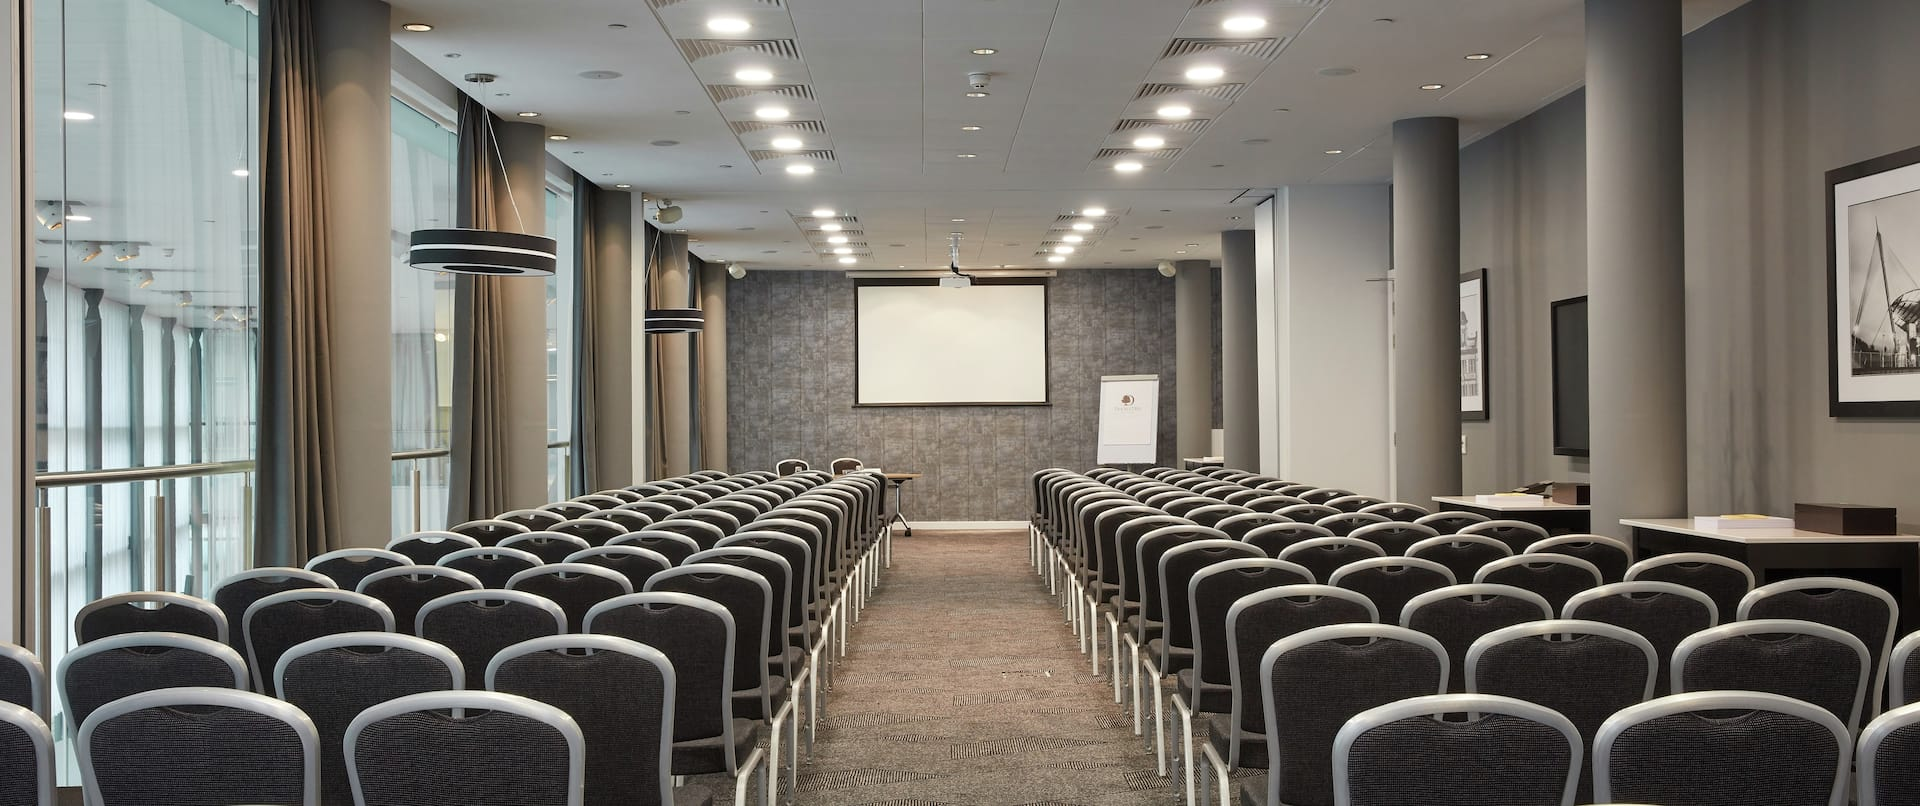 Spacious Meeting and Conference Room